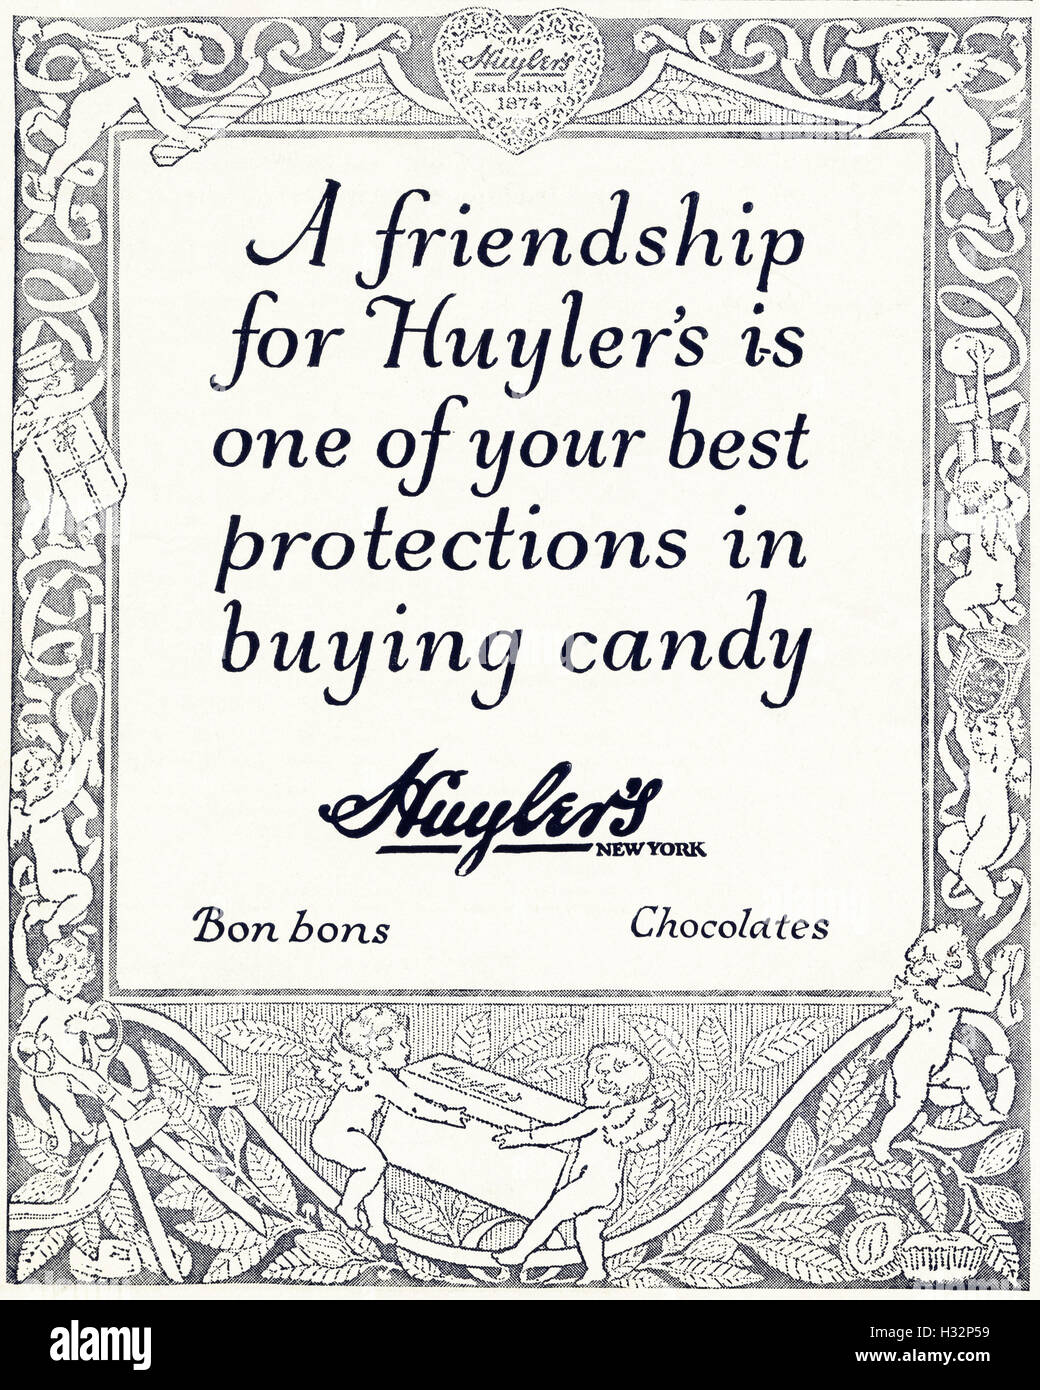 1920 advert from original old vintage American magazine 1920s advertisement advertising Huyler's candy bon bons Stock Photo